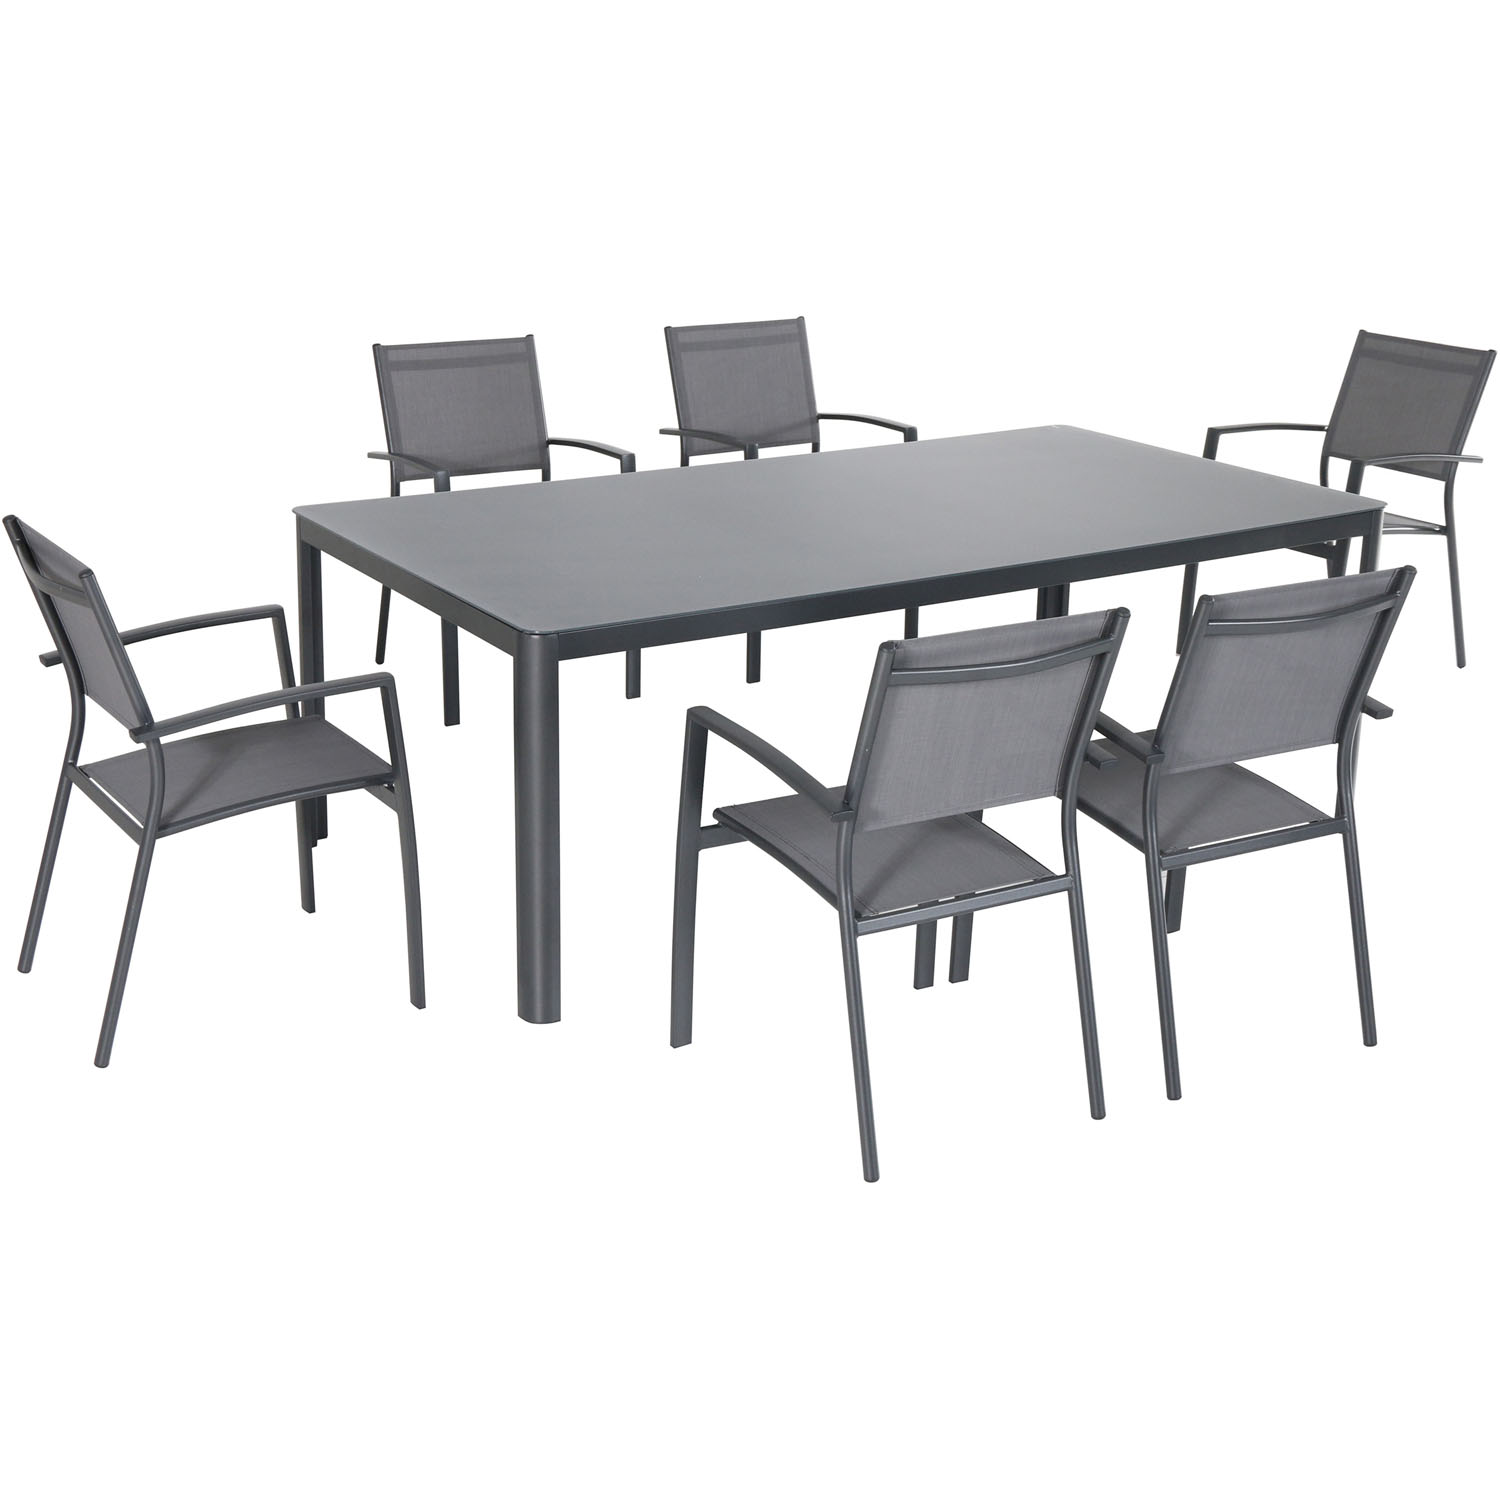 "Hanover Fresno 7-Piece Outdoor Dining Set with 6 Sling Arm Chairs and a 42"" x 83"" Glass-Top Table"